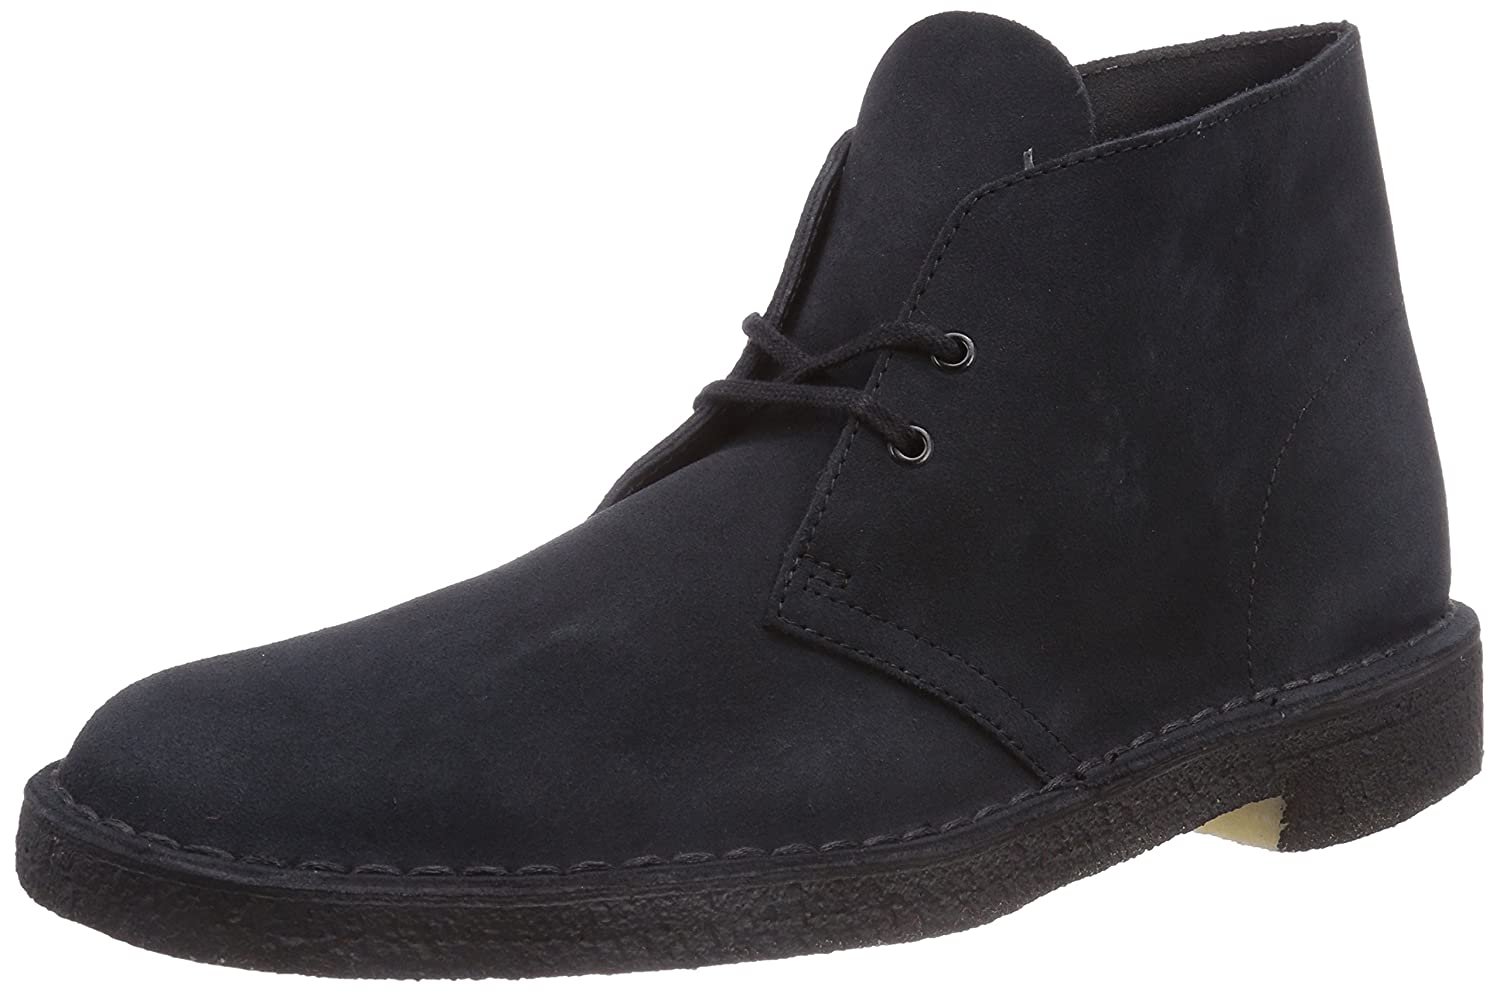 Clarks Originals Desert Boot, Damen Derby Schnürhalbschuhe, Blau (Navy Suede), 38 EU (5 Damen UK)